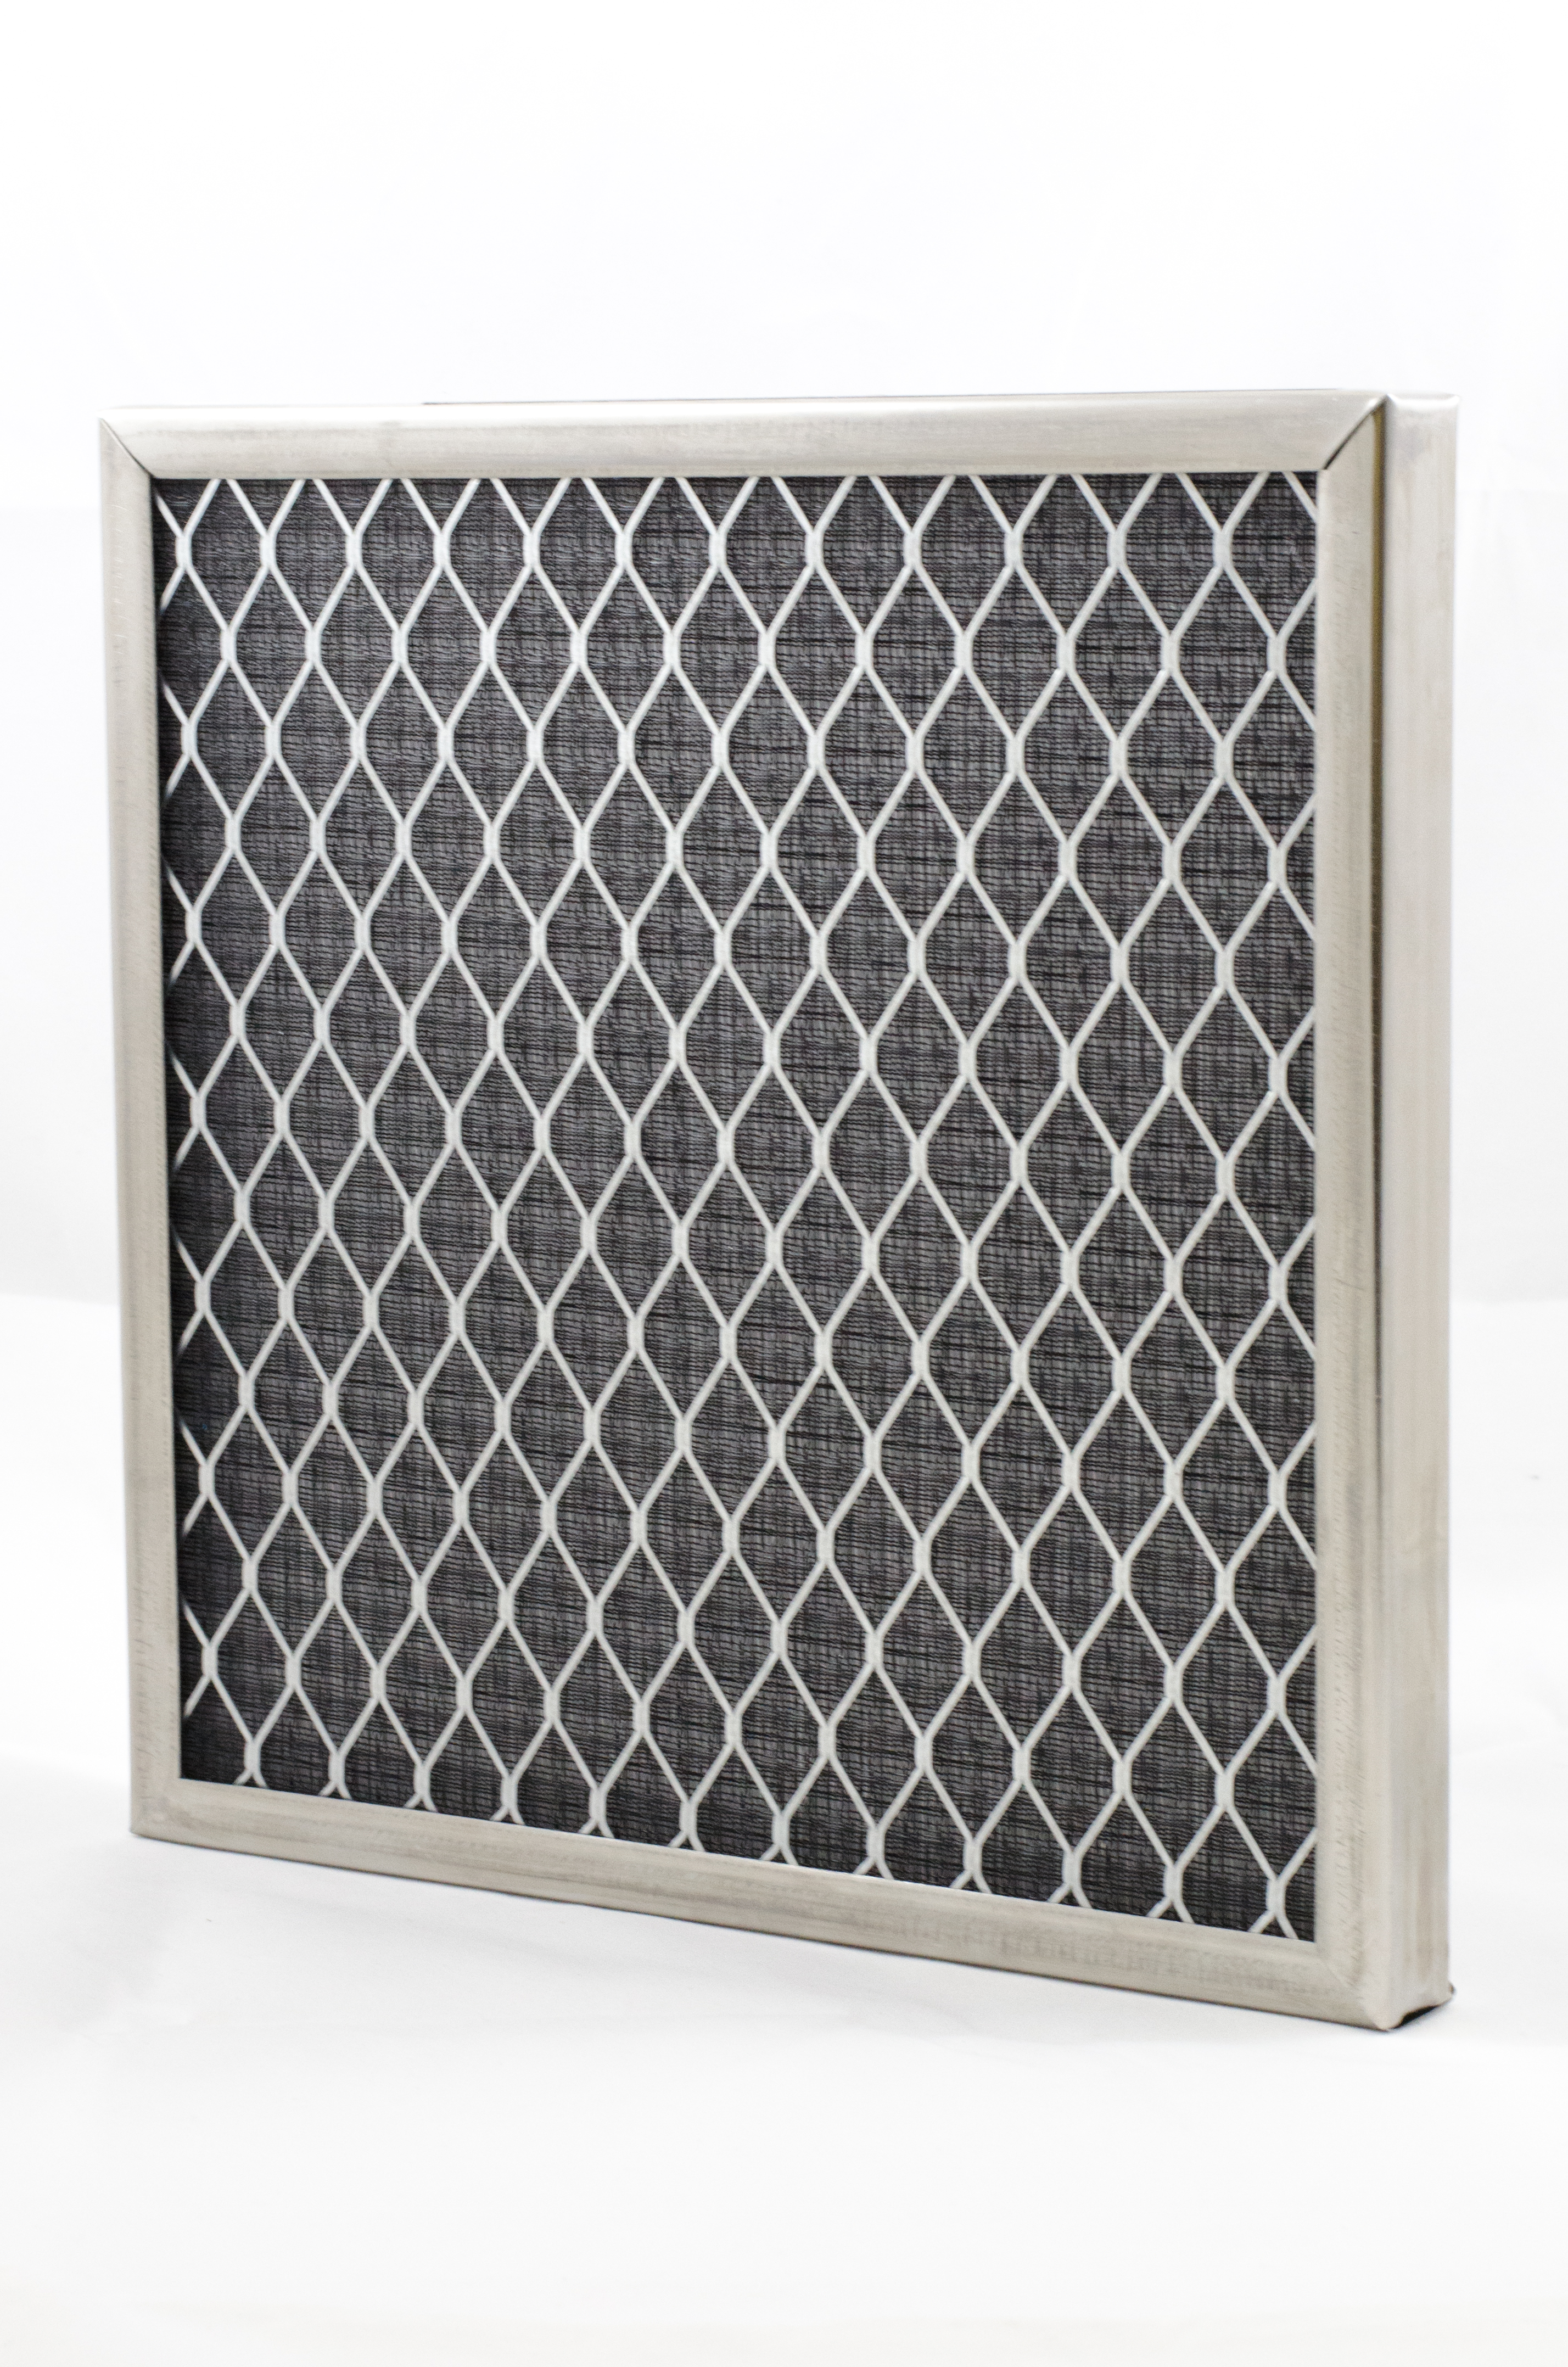 LifeStyle Plus Washable Air Filter